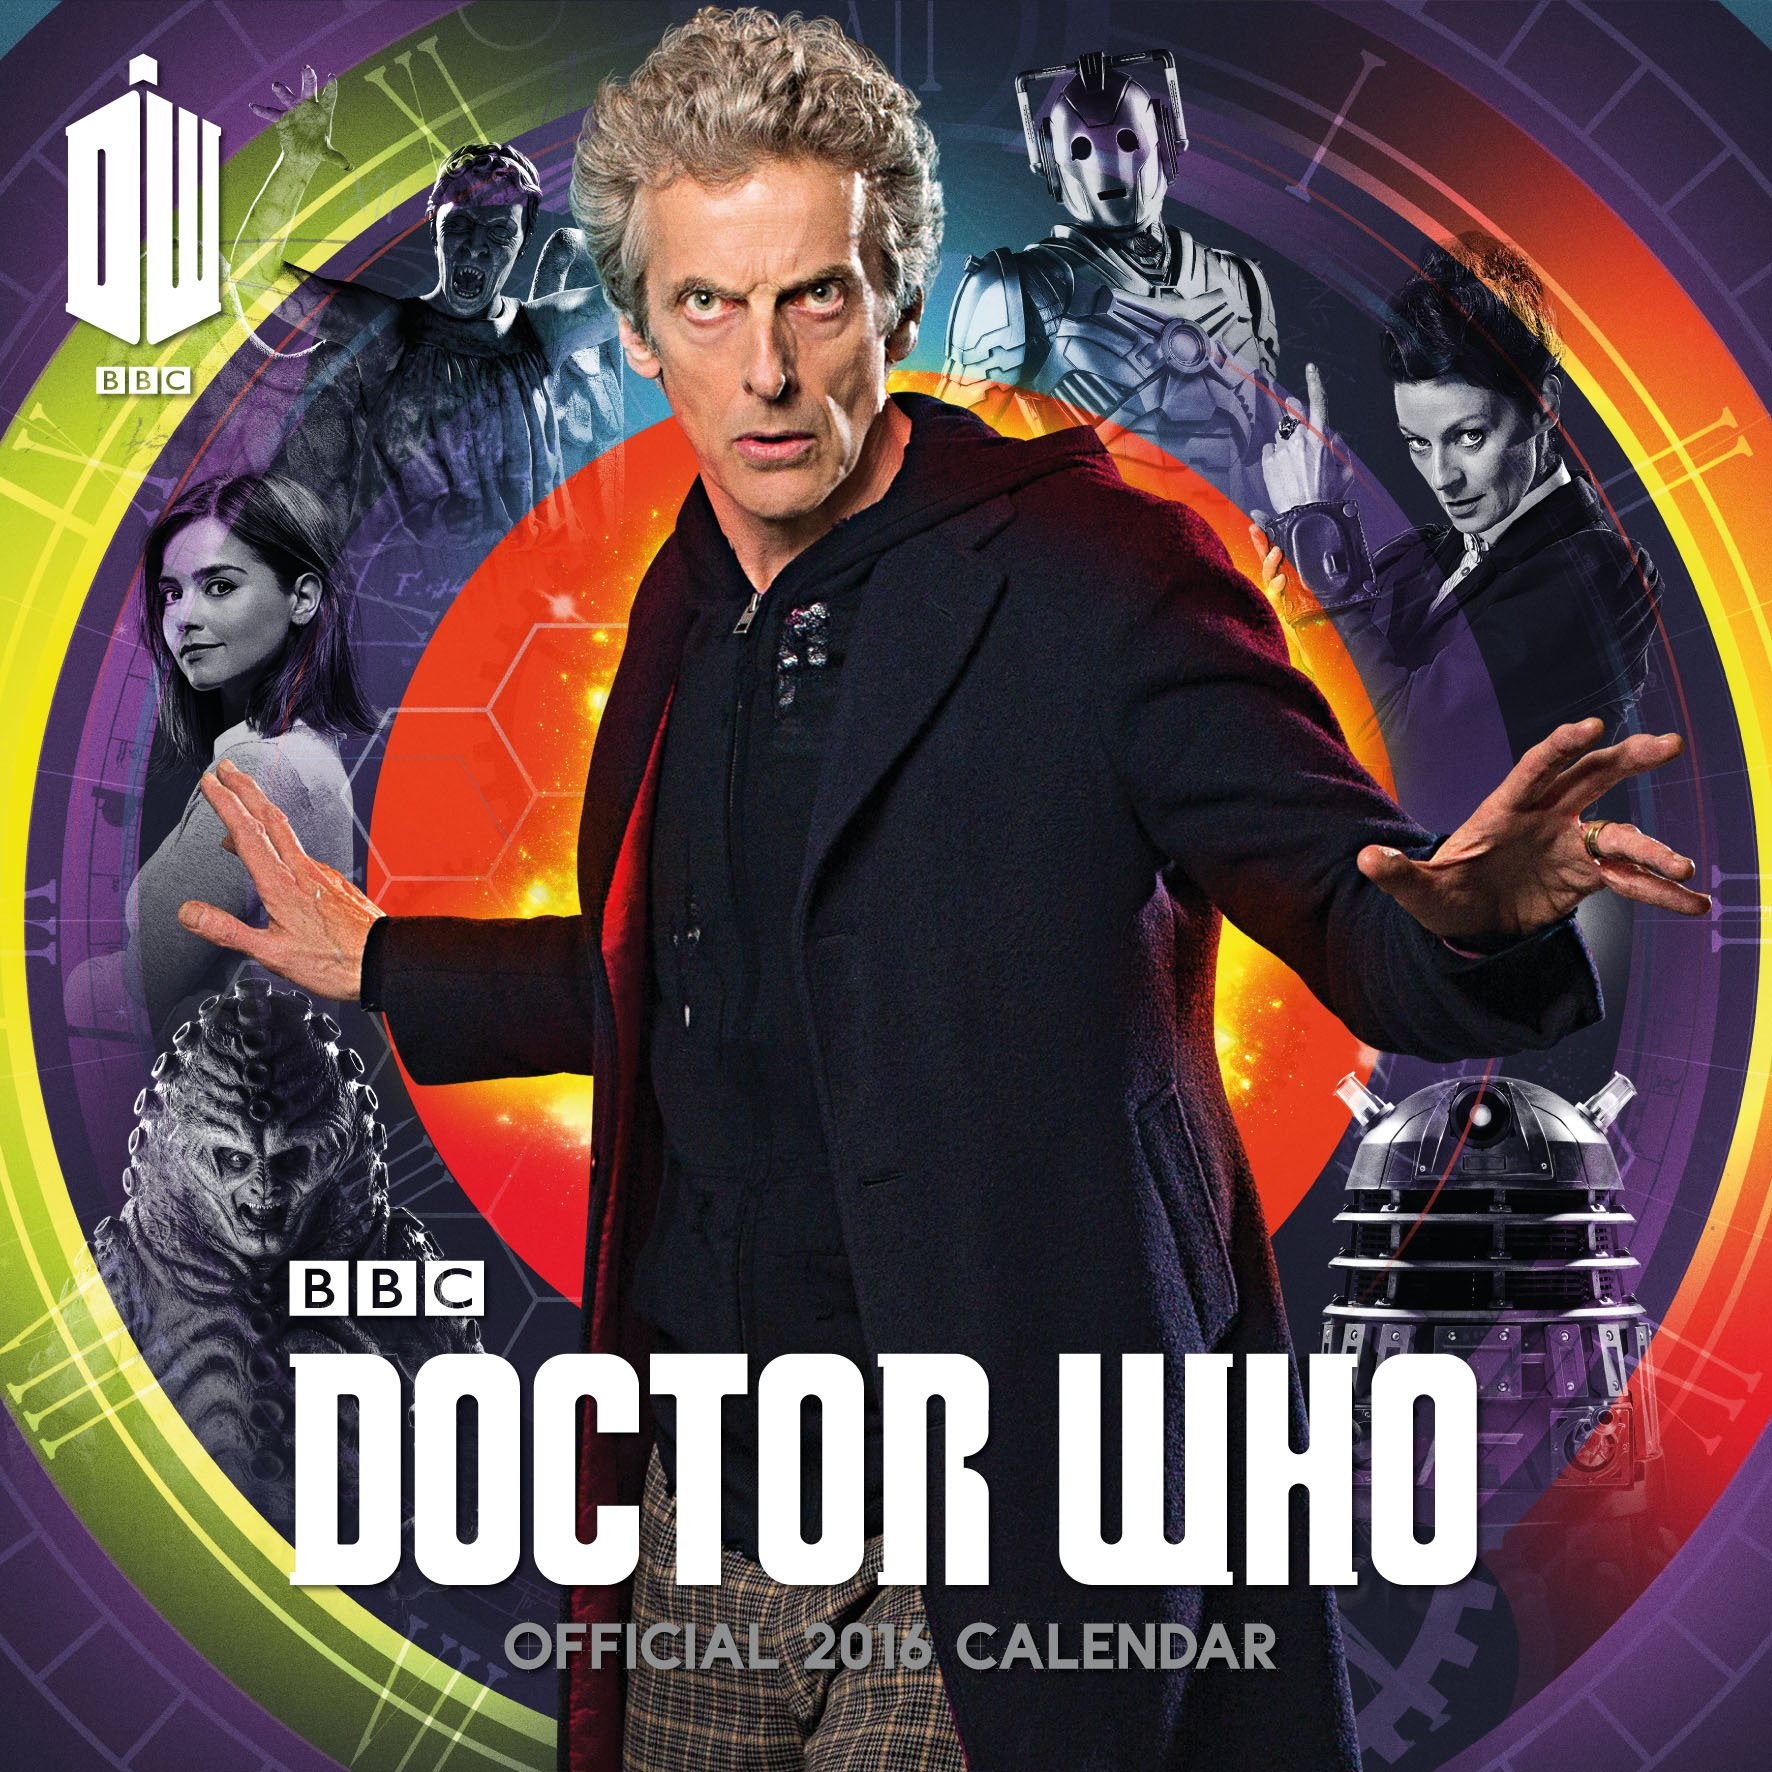 Official Doctor Who 2016 Square Wall Calendar (BBC...